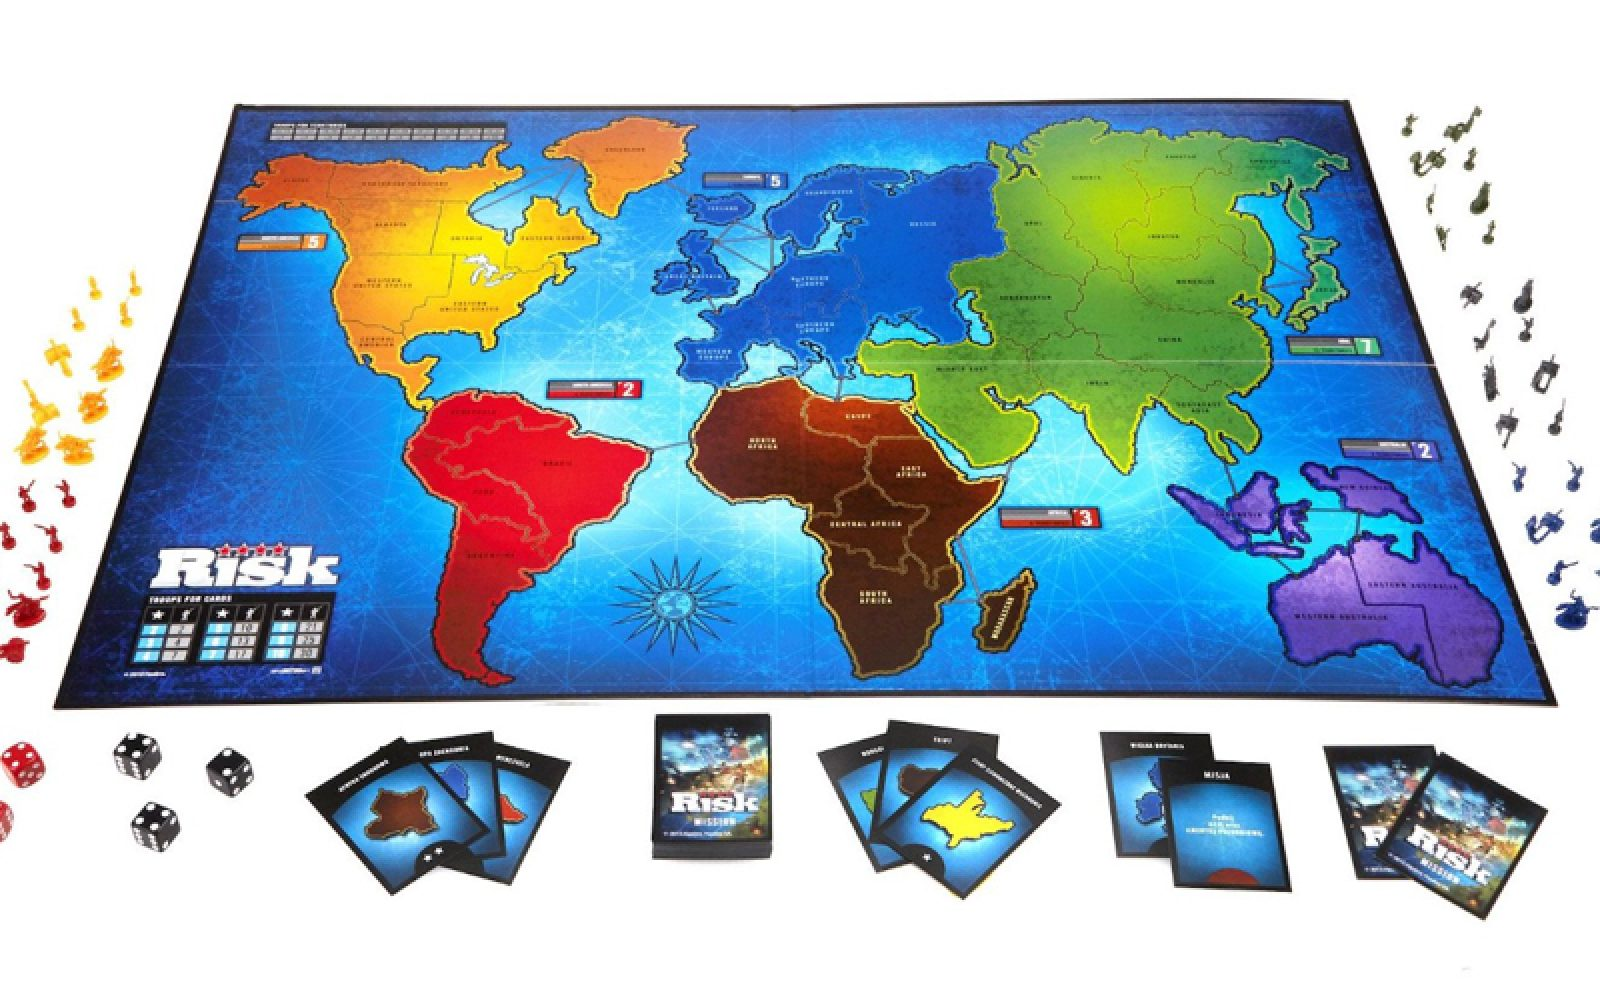 Amazon gold box strategy board games up to 40 off risk 16 7 amazon gold box strategy board games up to 40 off risk 16 7 wonders 27 splendor 20 more gumiabroncs Choice Image